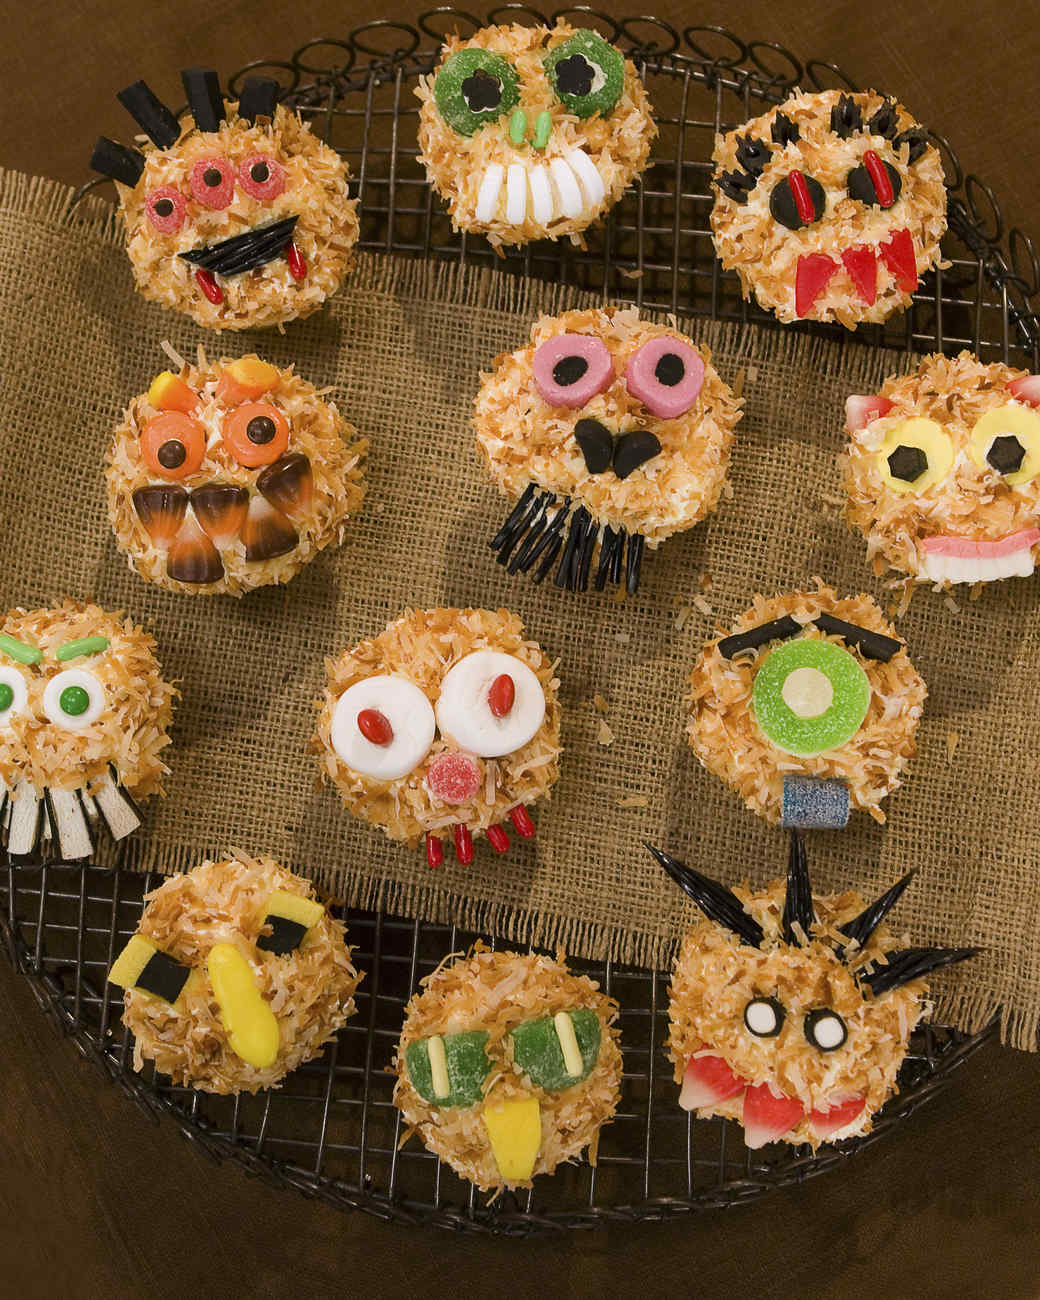 halloween cupcake recipes martha stewart - Martha Stewart Halloween Cakes